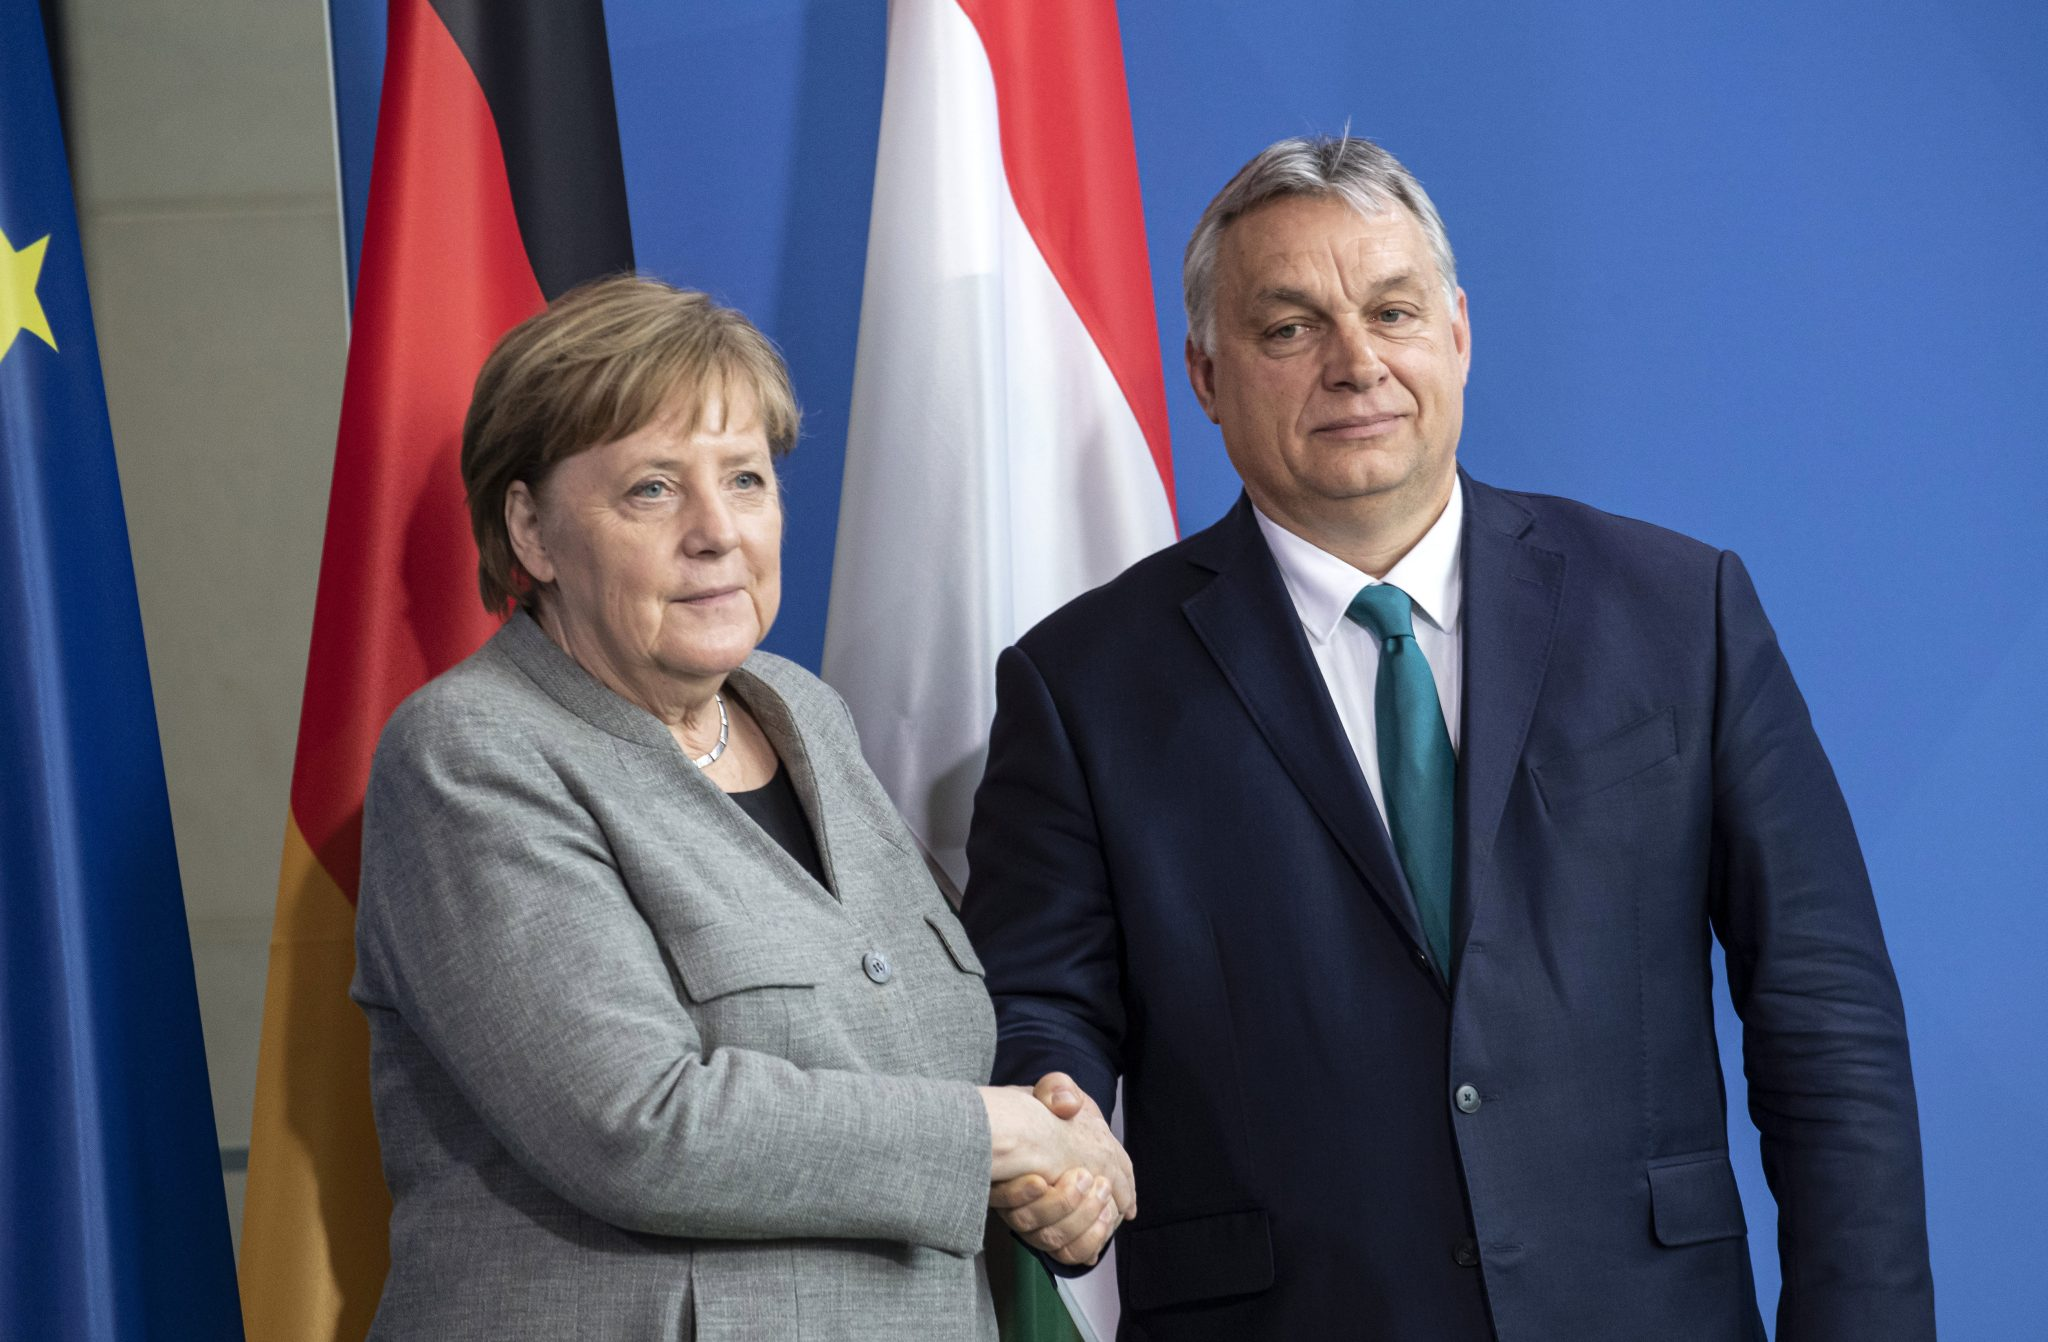 Orbán ahead of Merkel Meeting: Disagreement on EU Budget, but Optimism about Reaching Compromise - Hungary Today